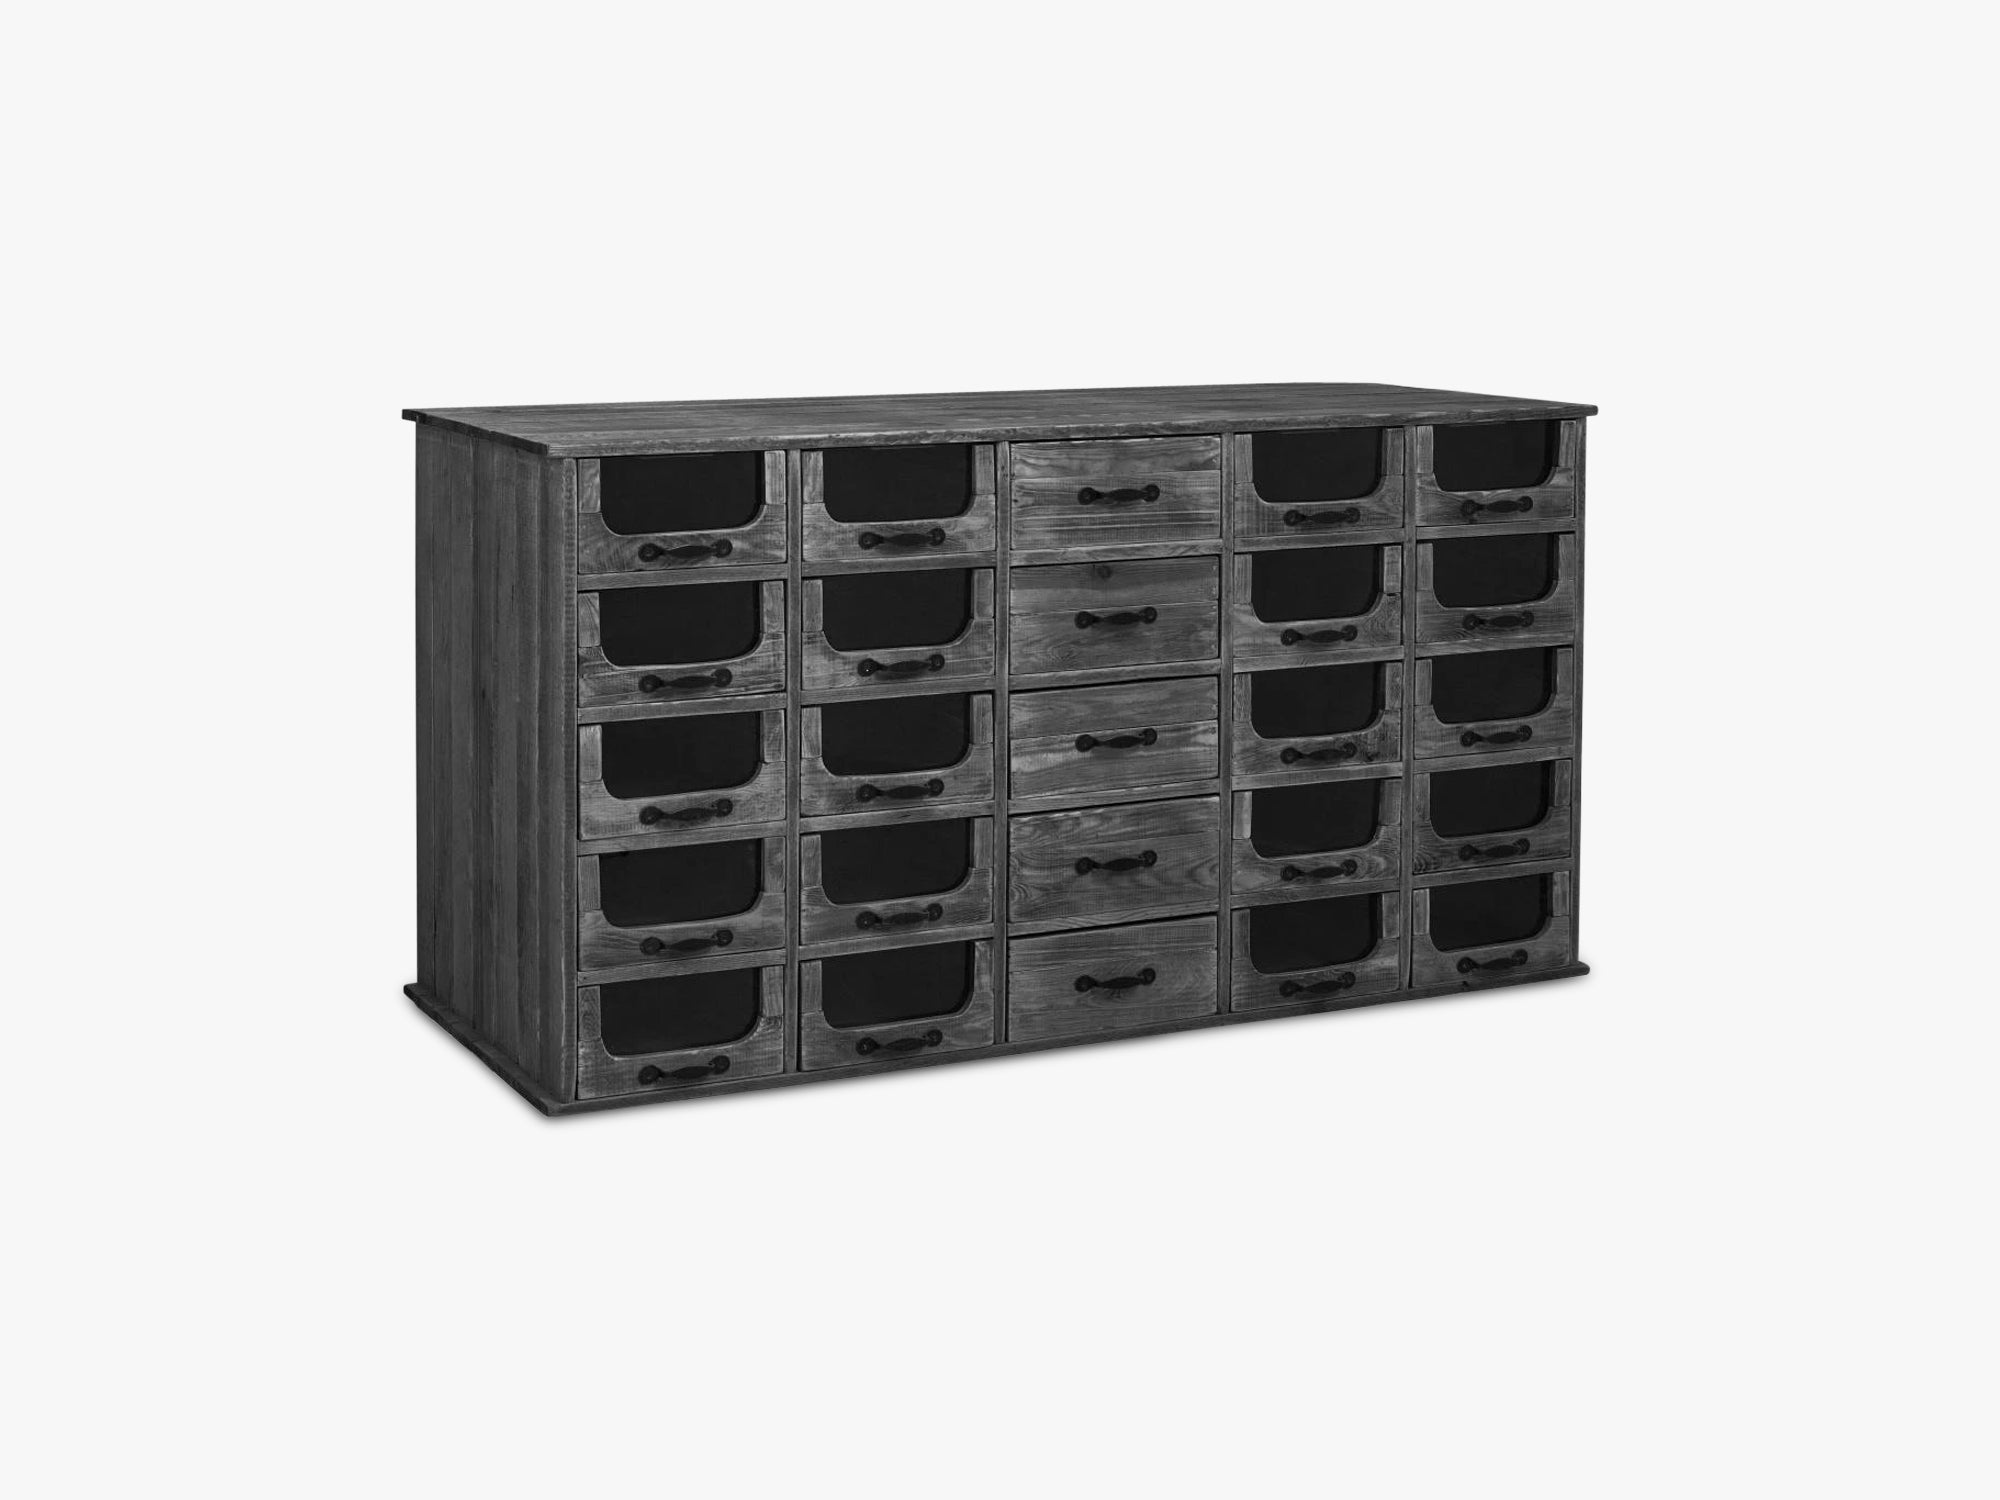 Pharmacy sideboard w 25 drawers fra Nordal